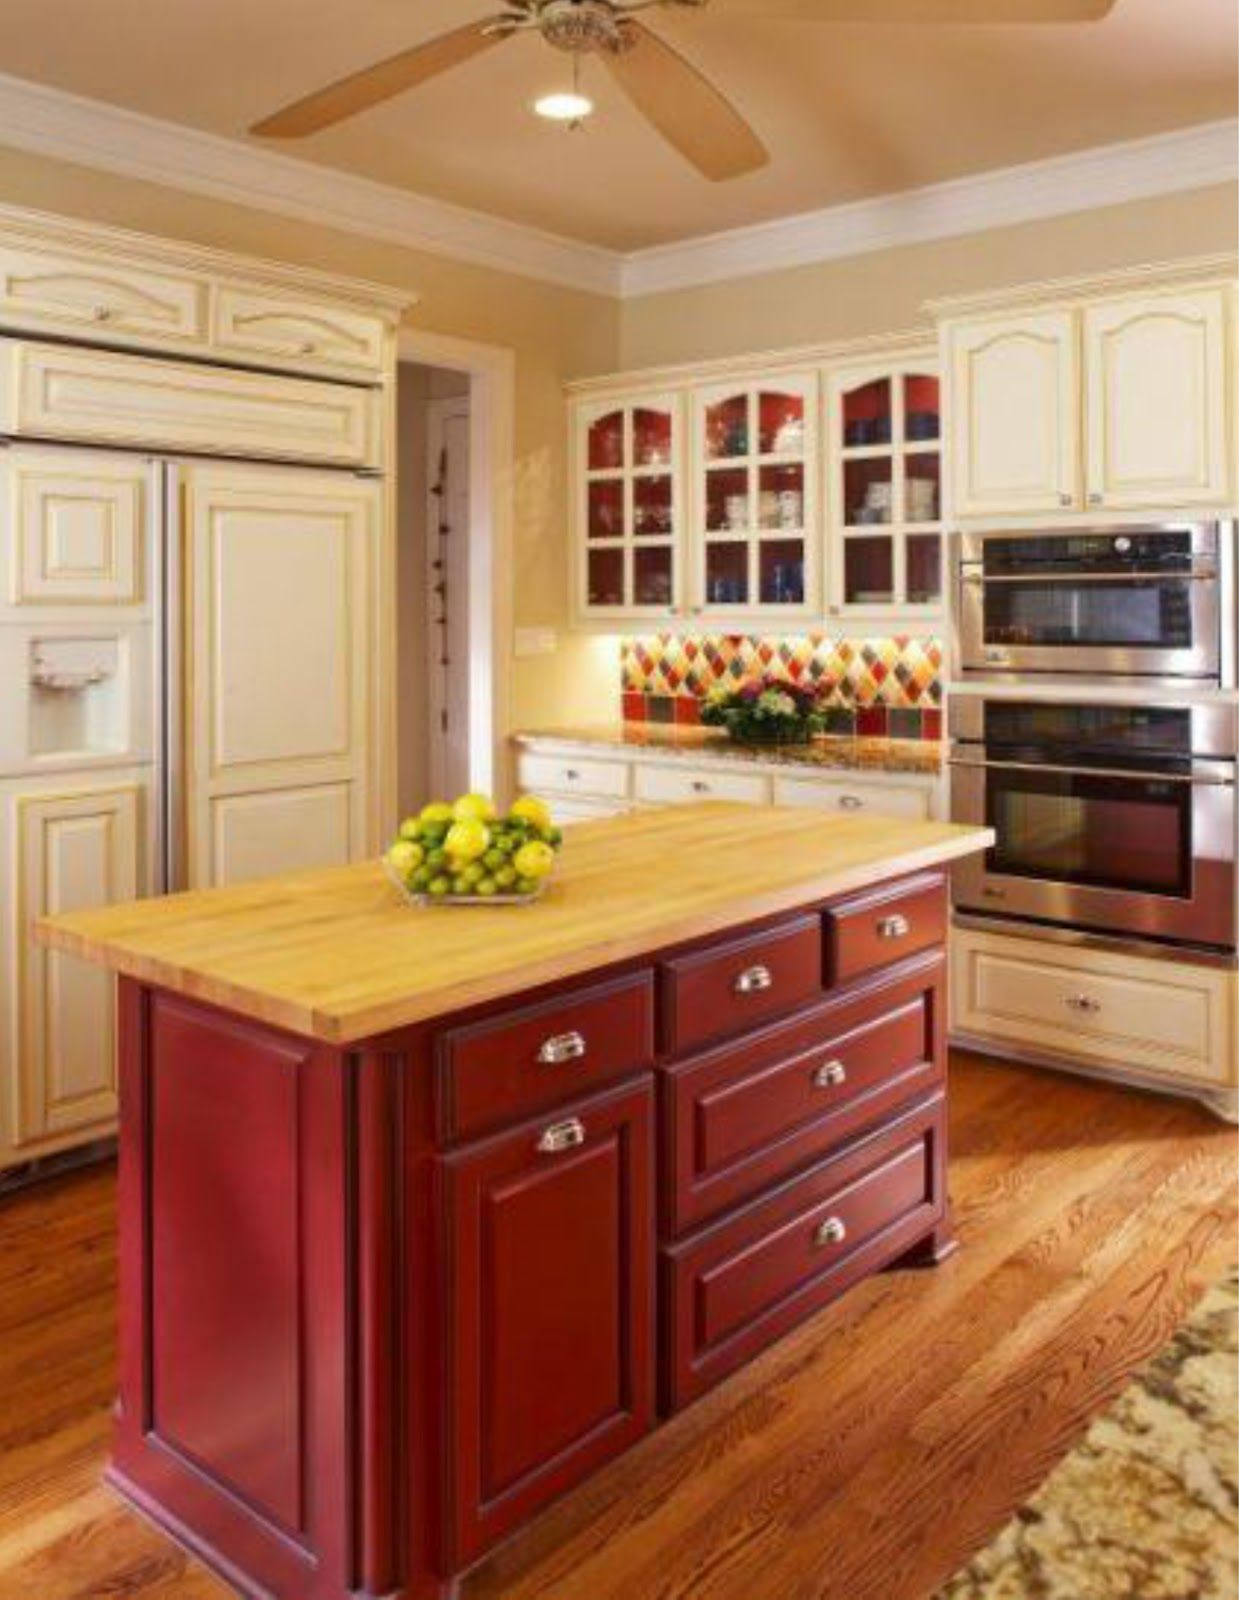 Kitchen Islands Different Color Than Cabinets Simplifying Remodeling Two Tone Cabinet Finishes Doub Barn Red Kitchen Red Kitchen Cabinets Red Kitchen Island